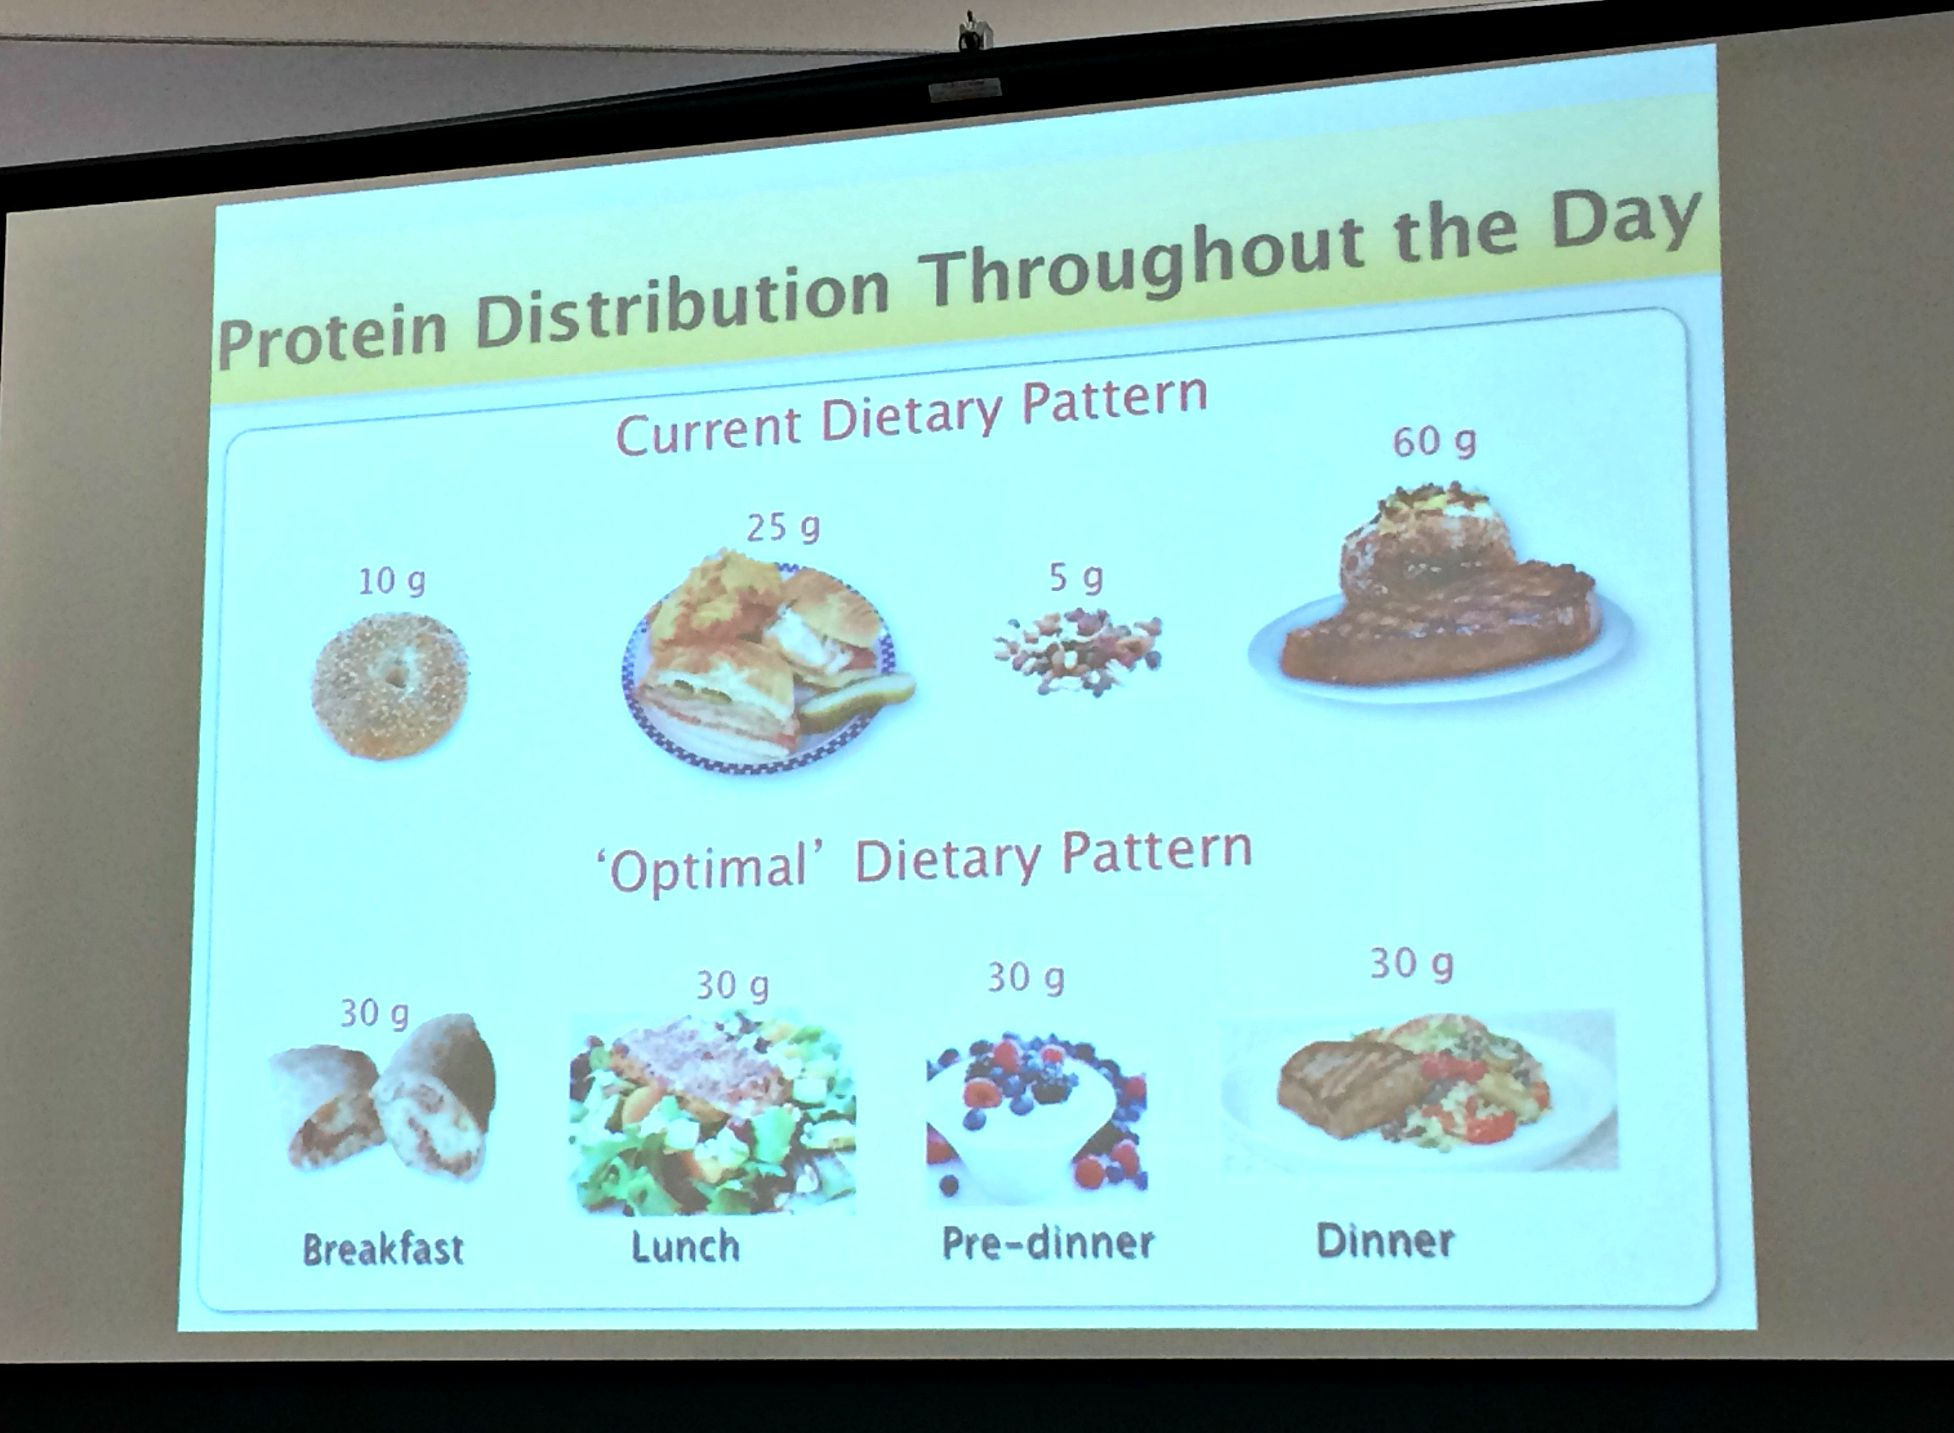 protein distribution throughout the day